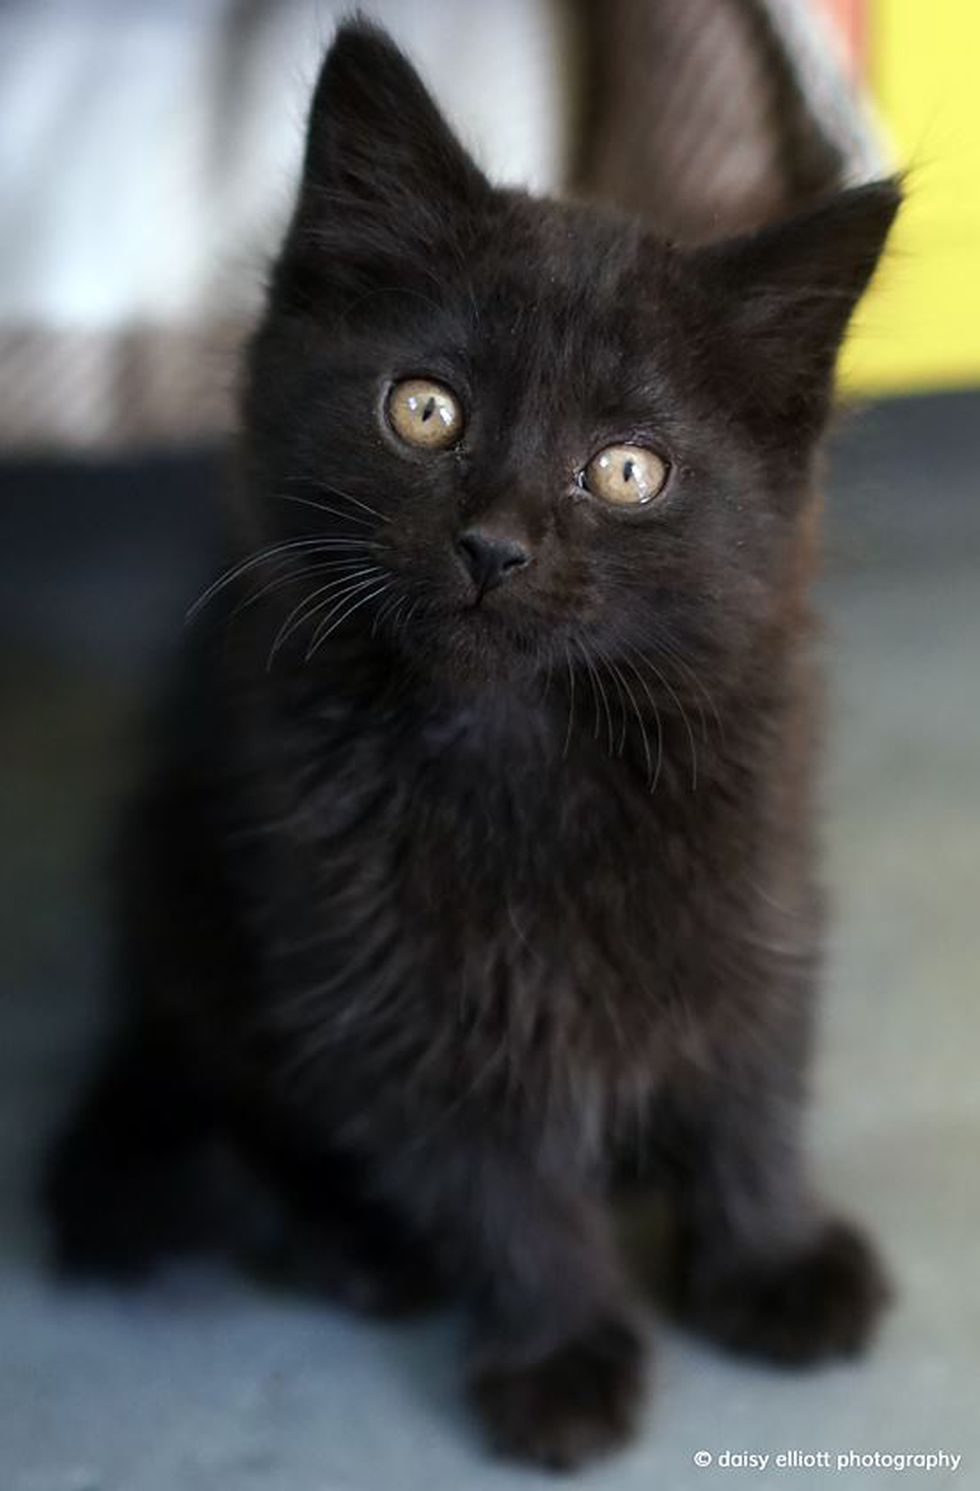 Cute kitty (Source: Hermitage No Kill Cat Shelter & Sanctuary/Daisy Elliott Photography)